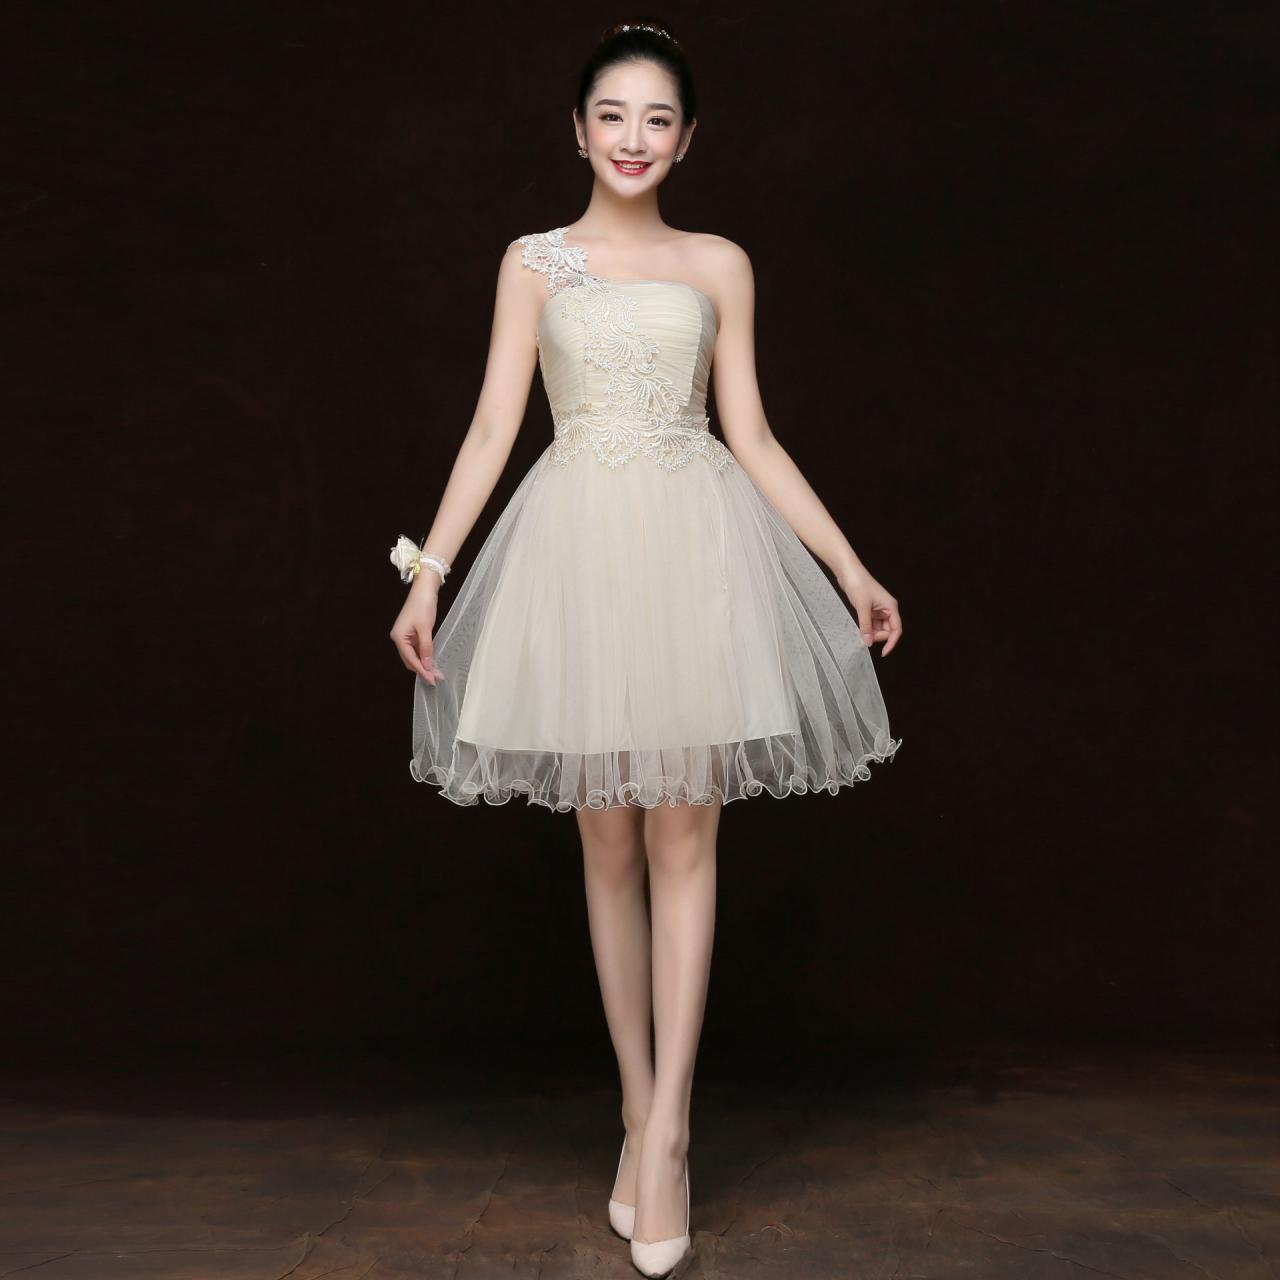 Free Shipping Fashion Women One Shoulder Mini Evening Party Prom Bridesmaid Wedding Dress - Champagne